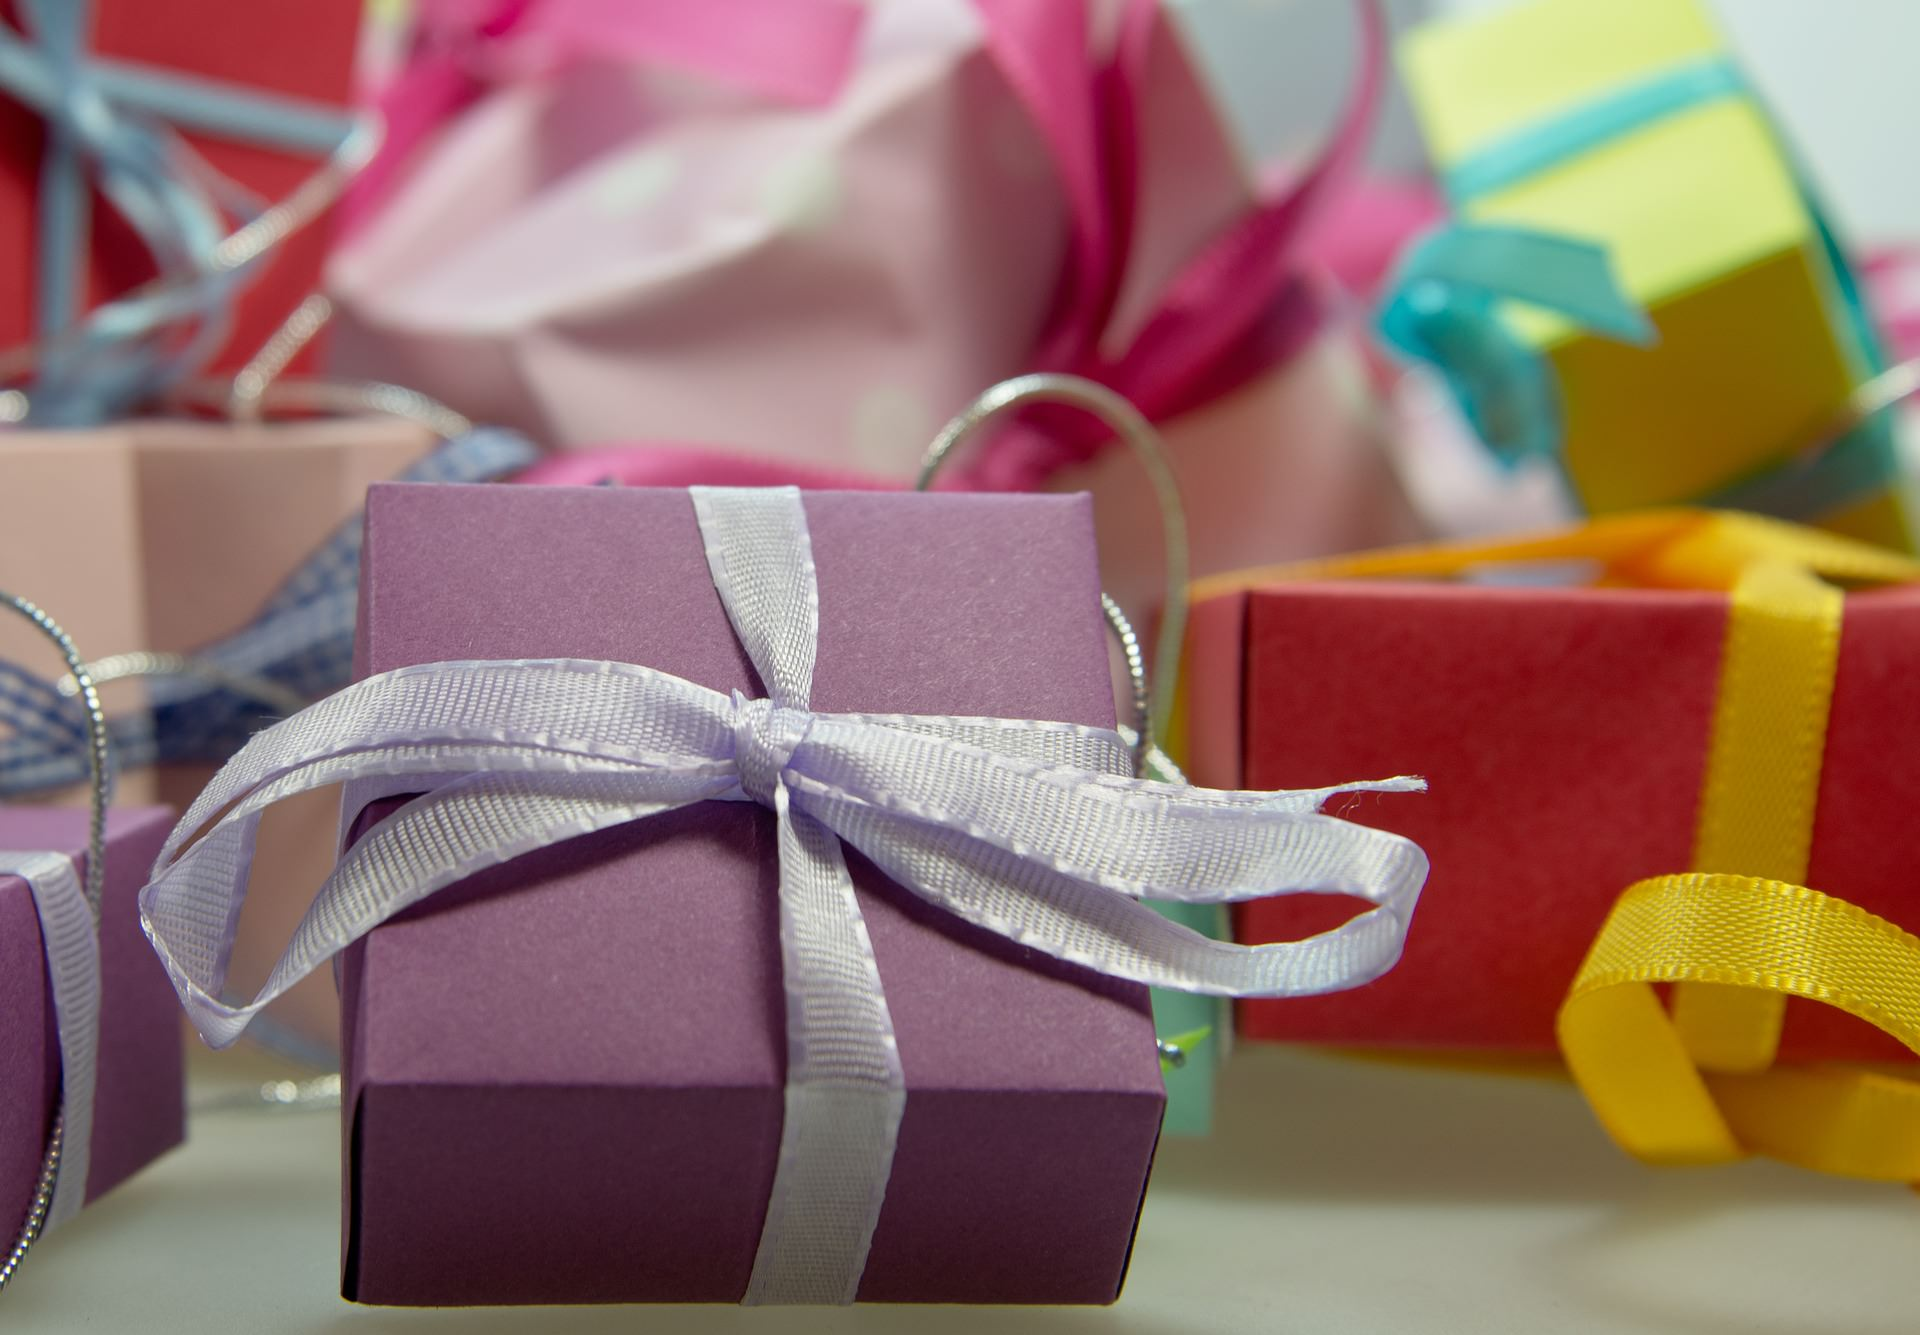 An image of gifts that have been wrapped up for a best friend.